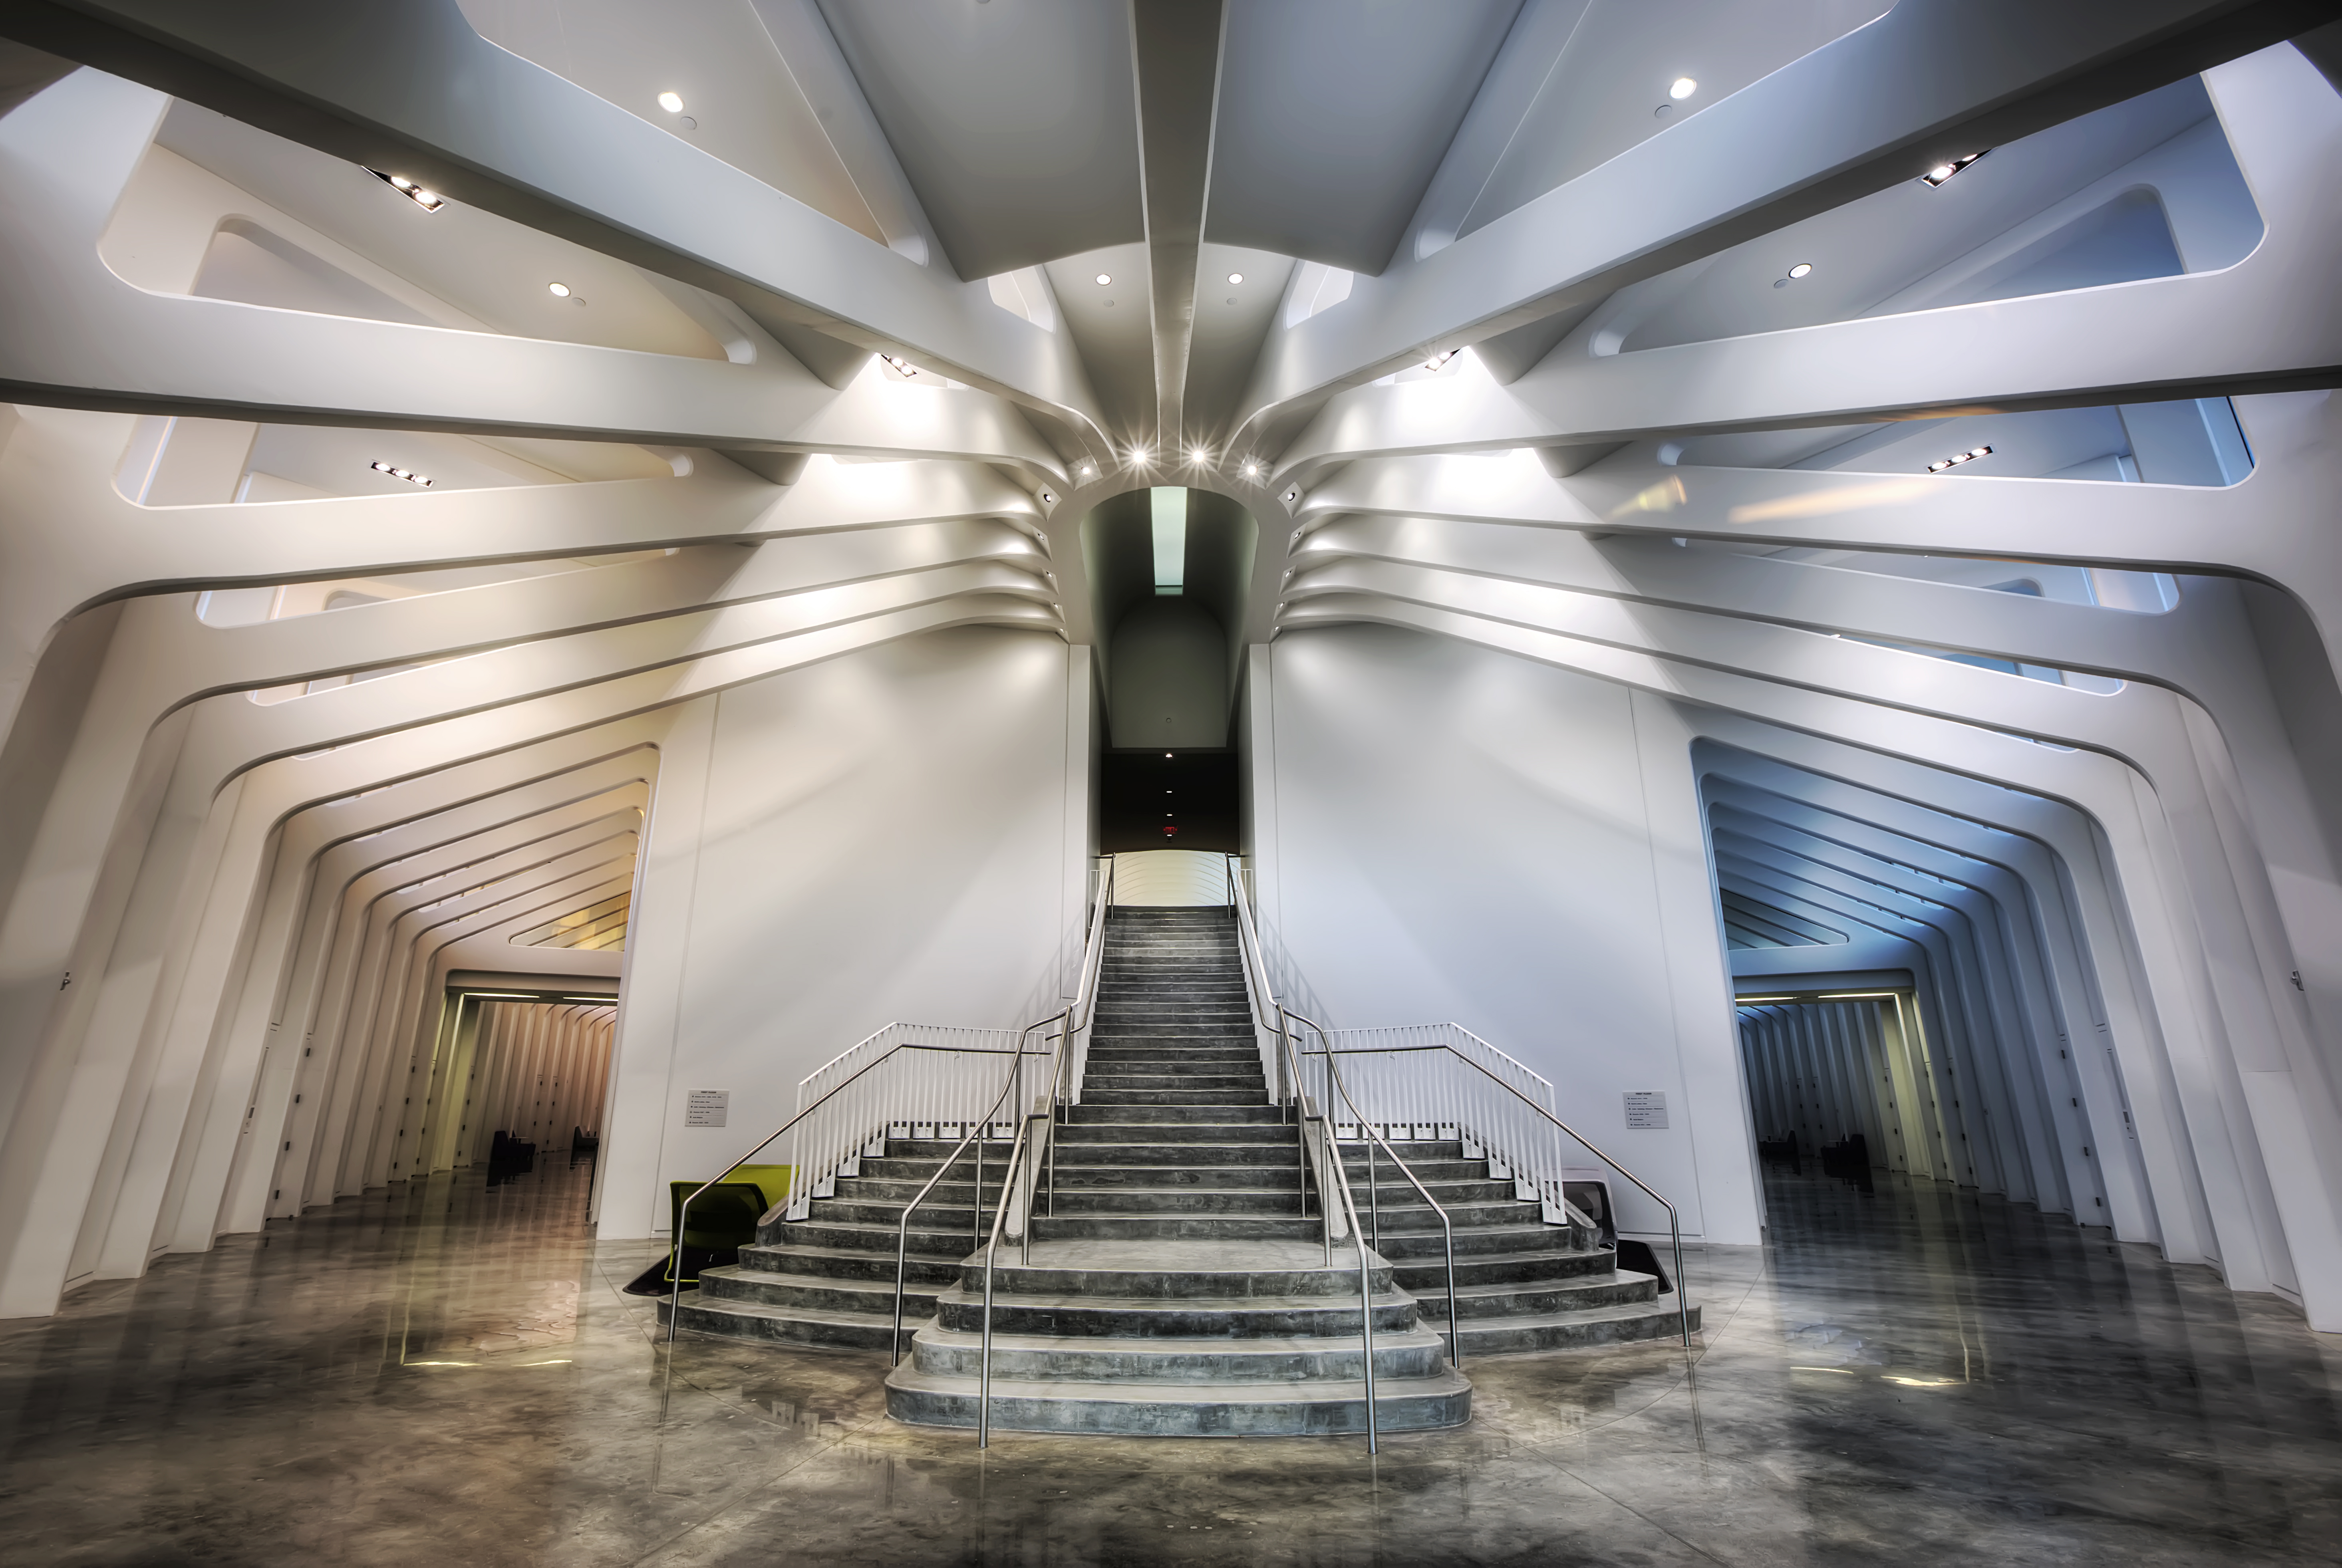 Image of FPU's central staircase and parallel hallways located in the Innovation, Science and Technology building